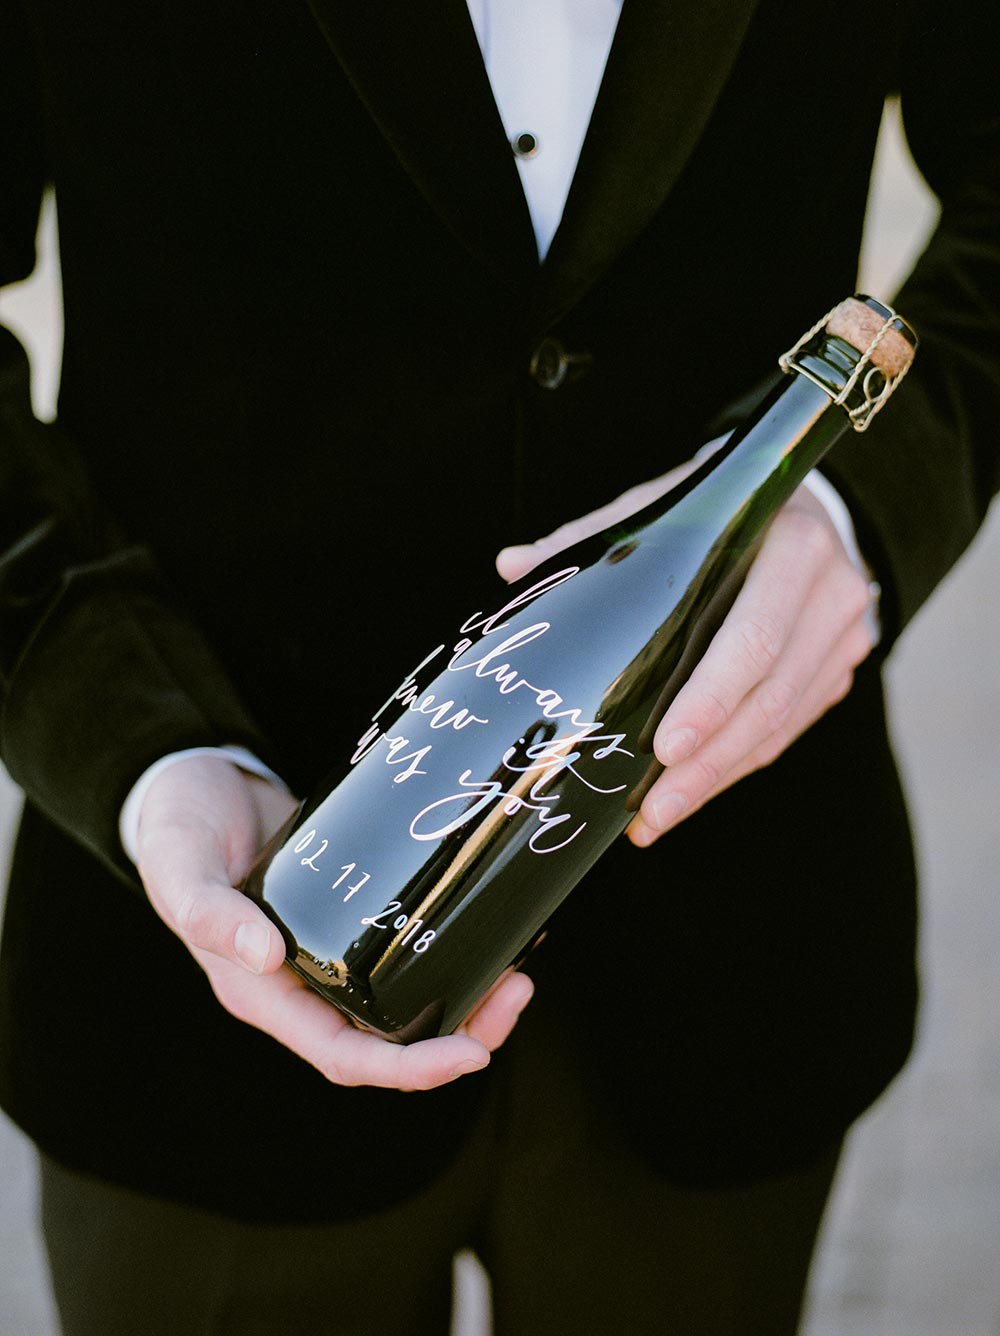 calligraphy champagne bottle